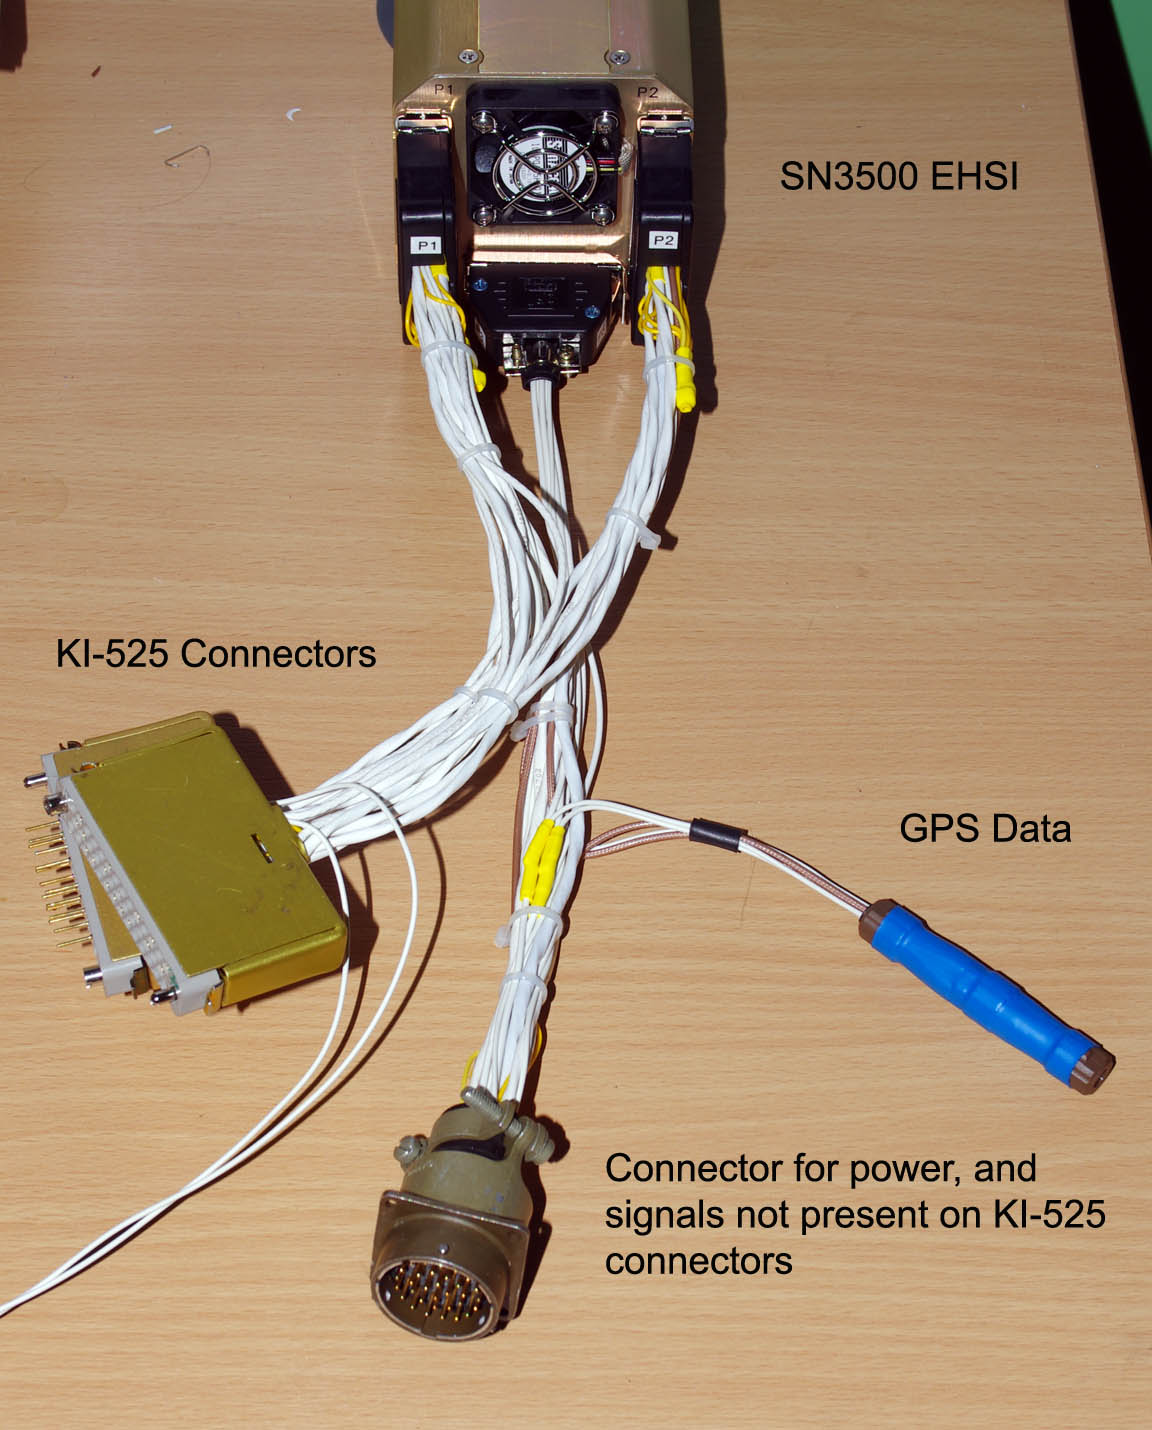 Sandel Sn3500 Ehsi Installation In A Socata Tb20gt Aircraft Wiring Standards